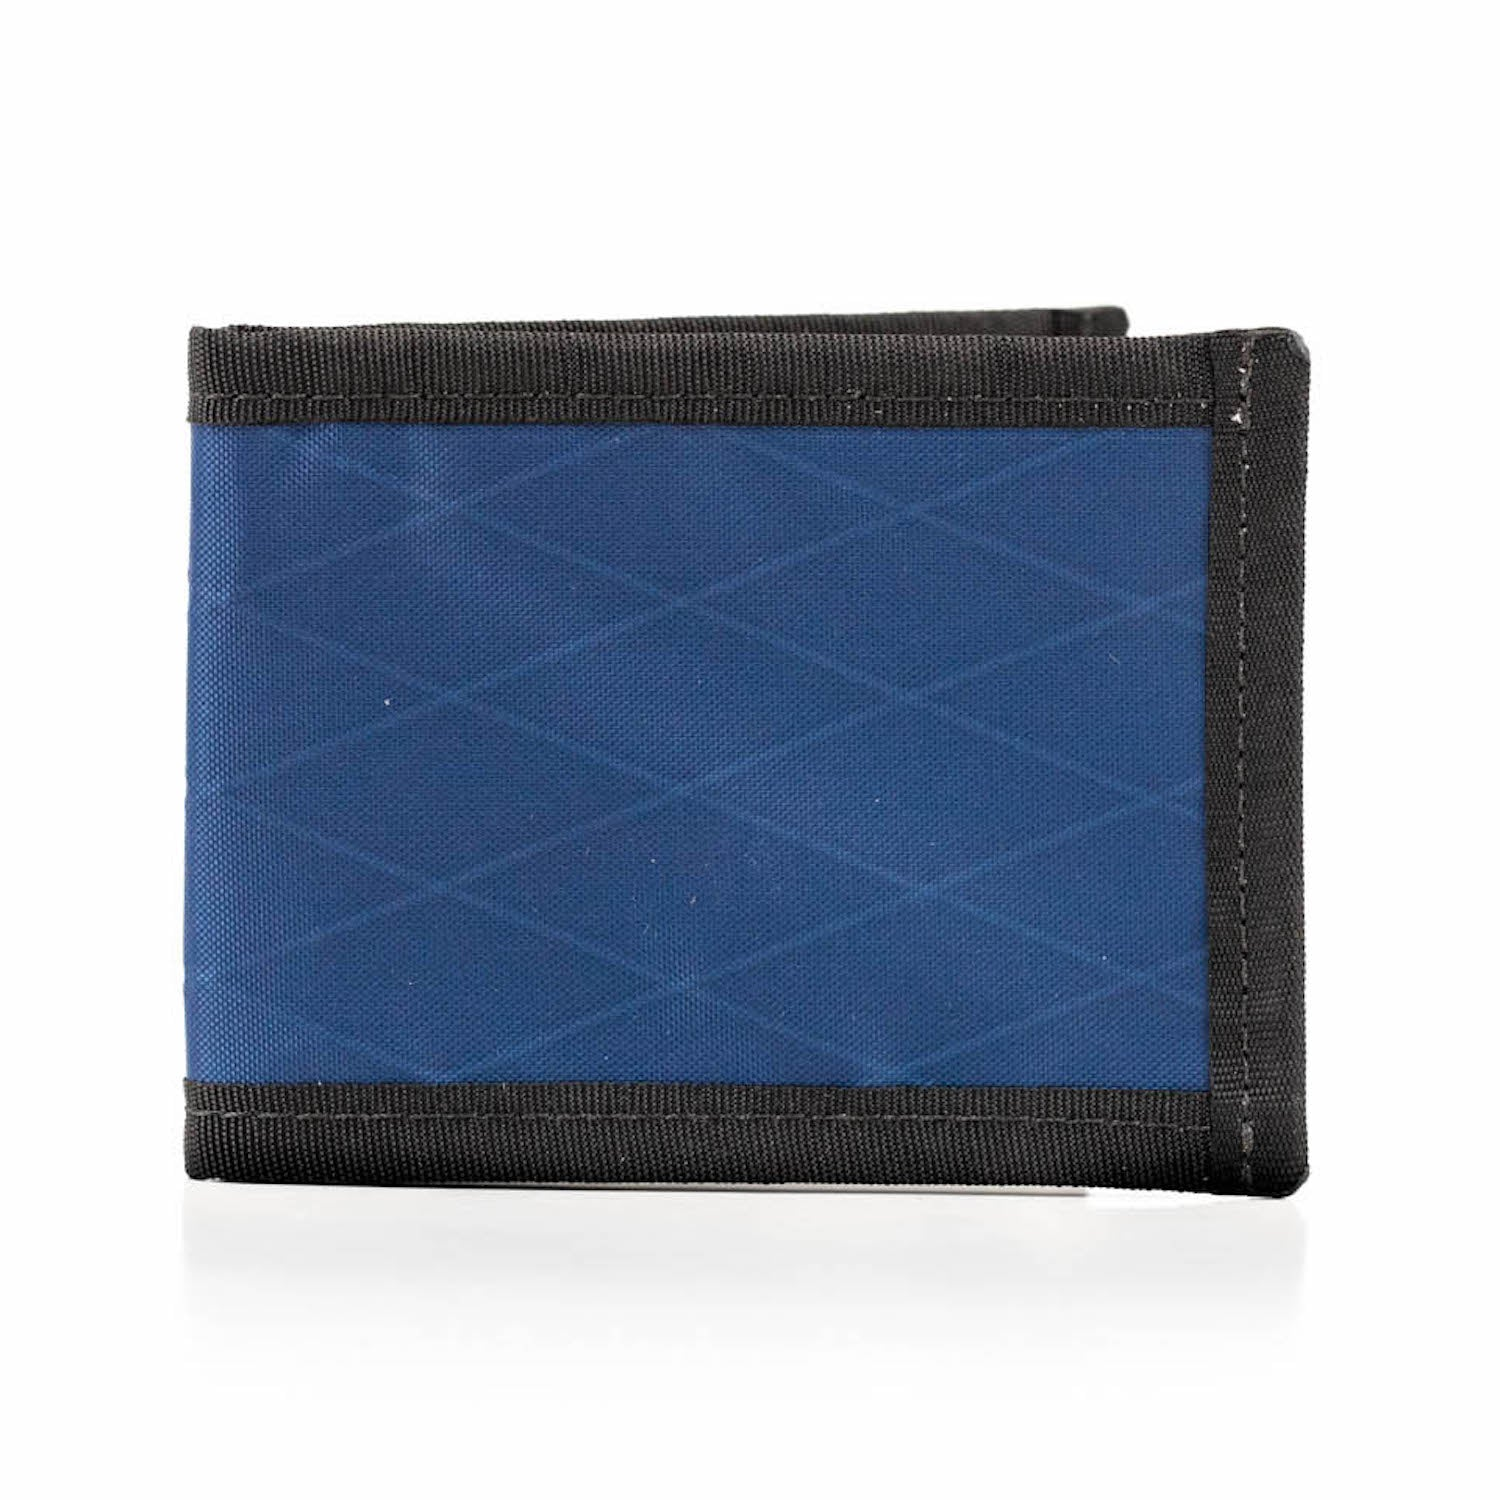 Vanguard - Bifold Wallet